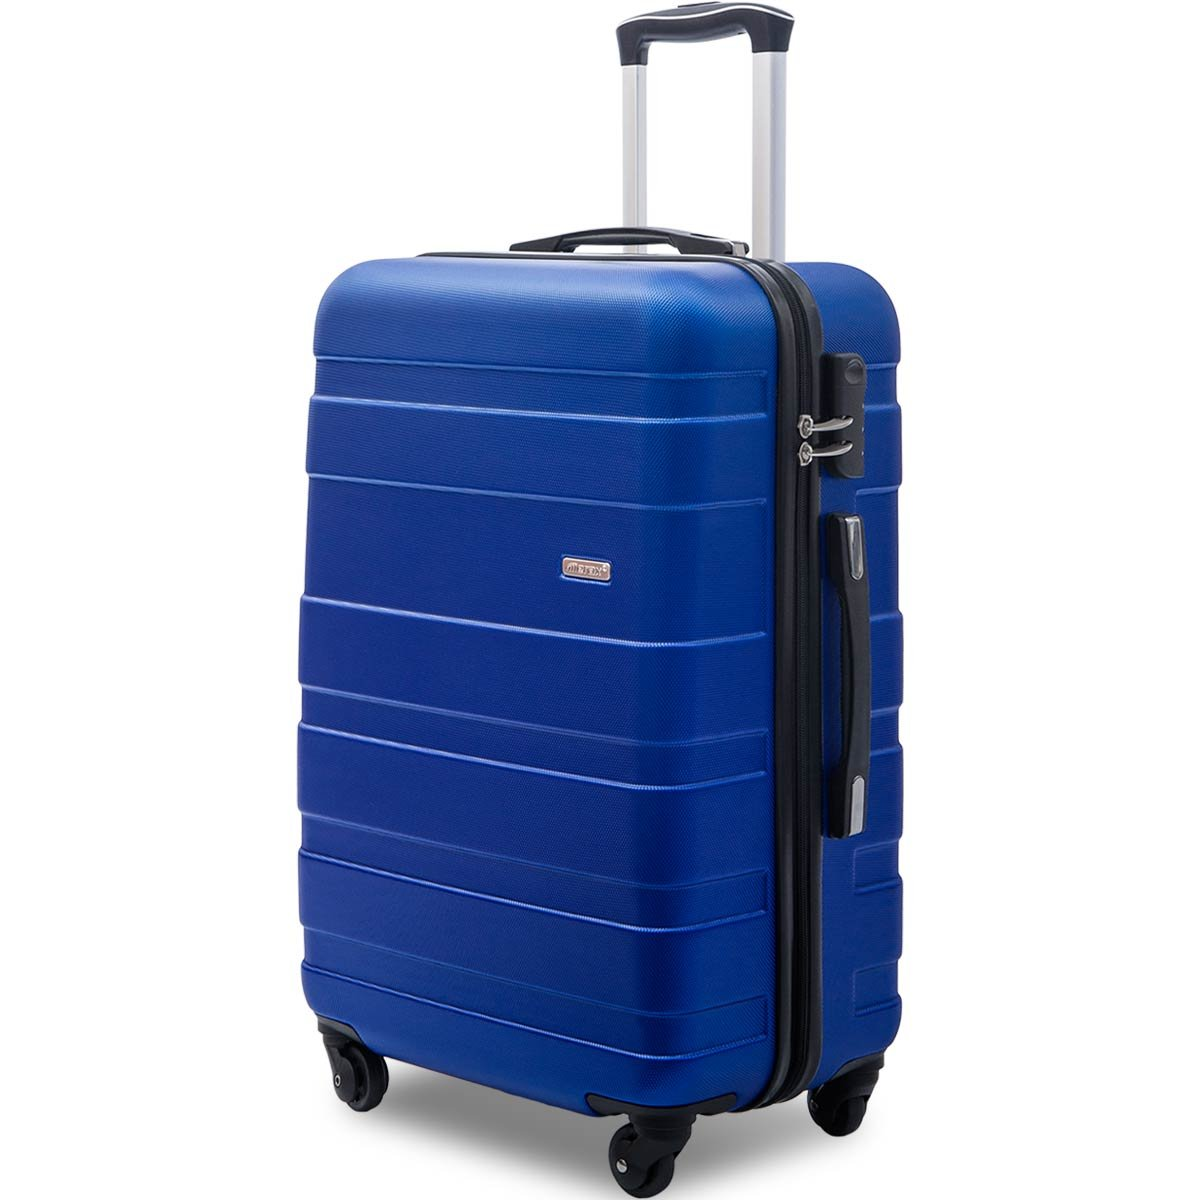 Merax Afuture Luggage Lightweight Spinner Suitcase 20inch 24inch and 28 inch Available (20-Carry on, Blue)